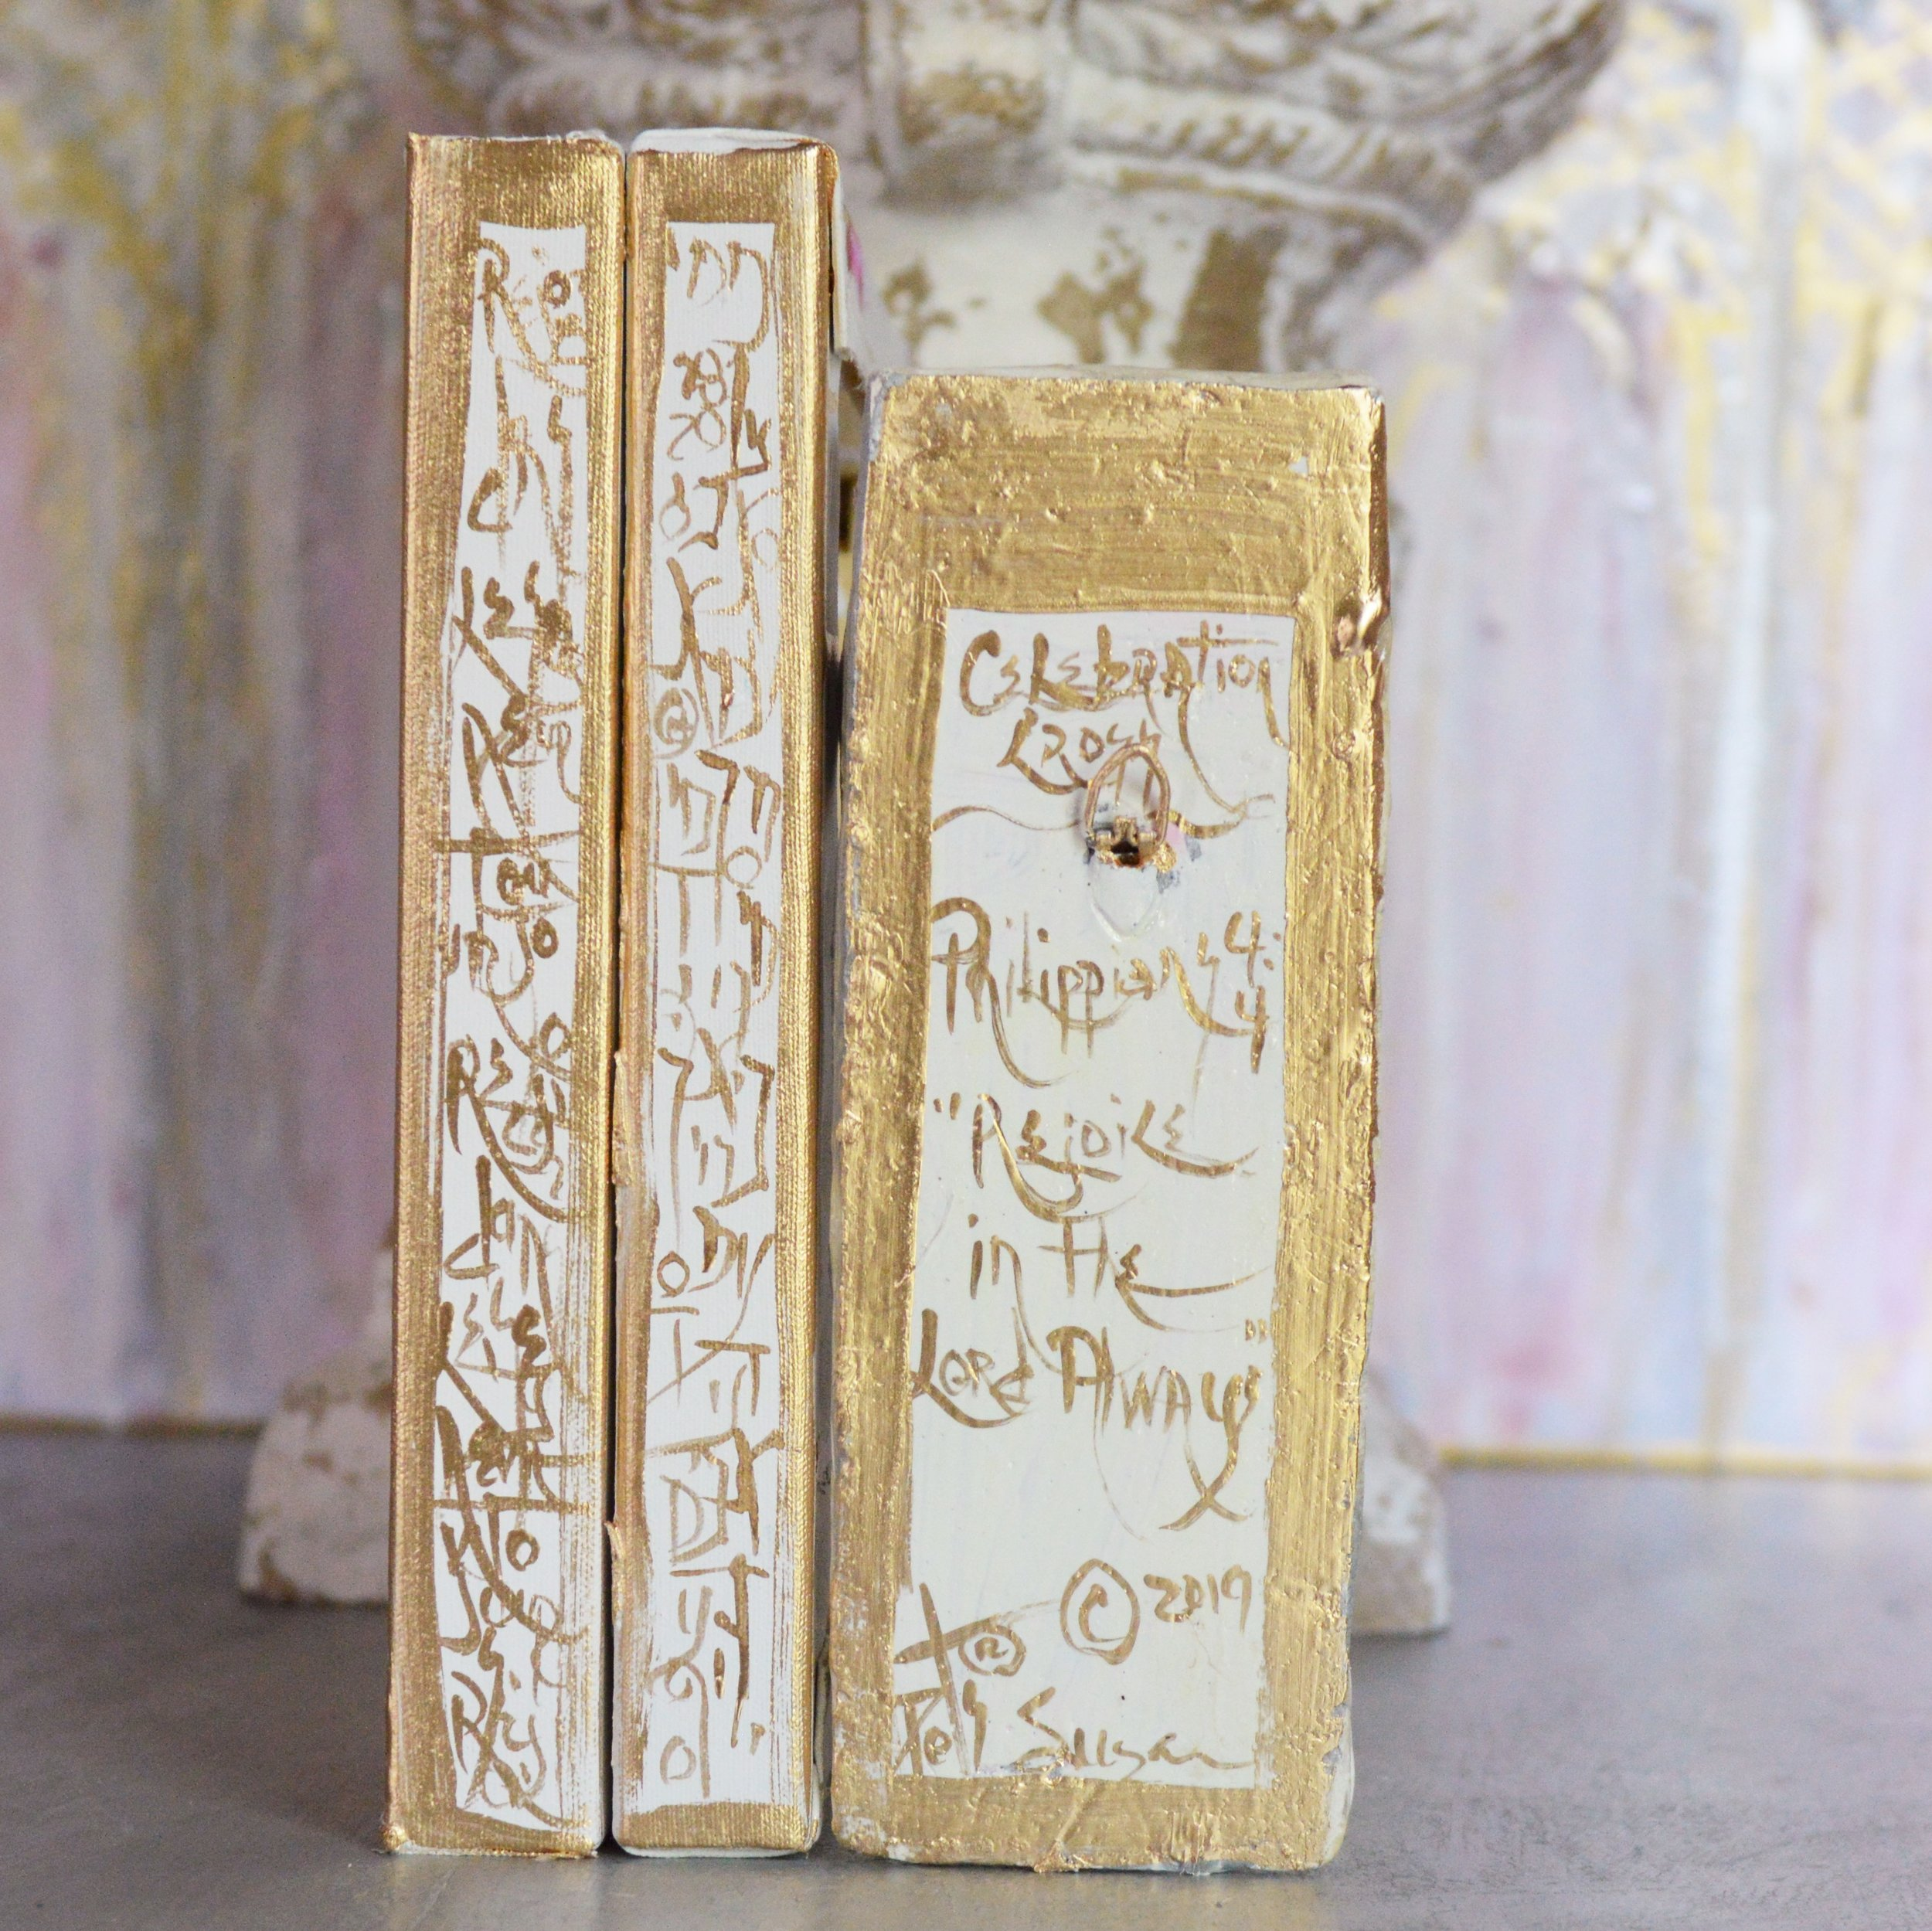 Scripture hand painted in gold leaf, in examples of French and Hebrew around the sides, and in English on the back